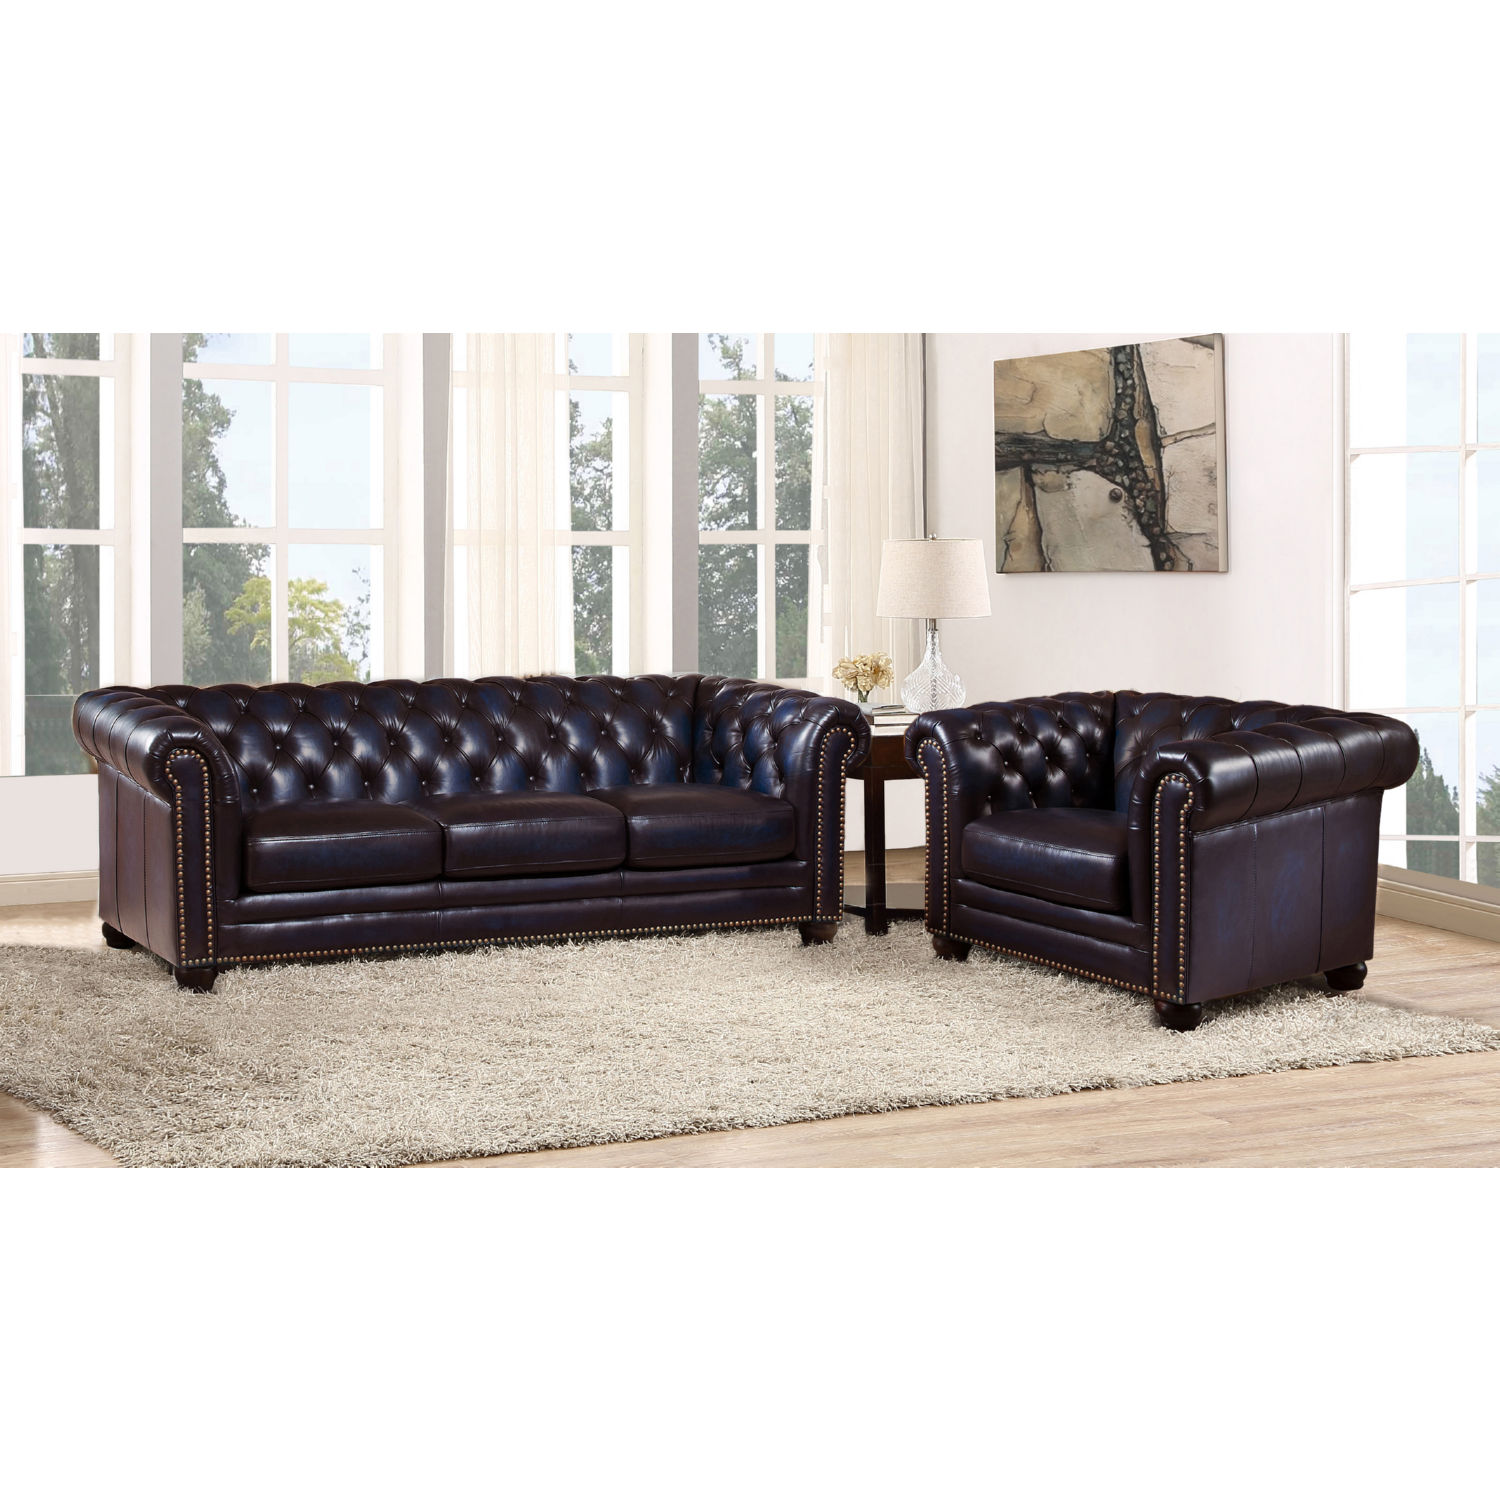 Excellent Dynasty Leather 2Pc Set Chesterfield Sofa Armchair In Tufted Navy Blue W Nailheads By Hydeline Leather Gmtry Best Dining Table And Chair Ideas Images Gmtryco